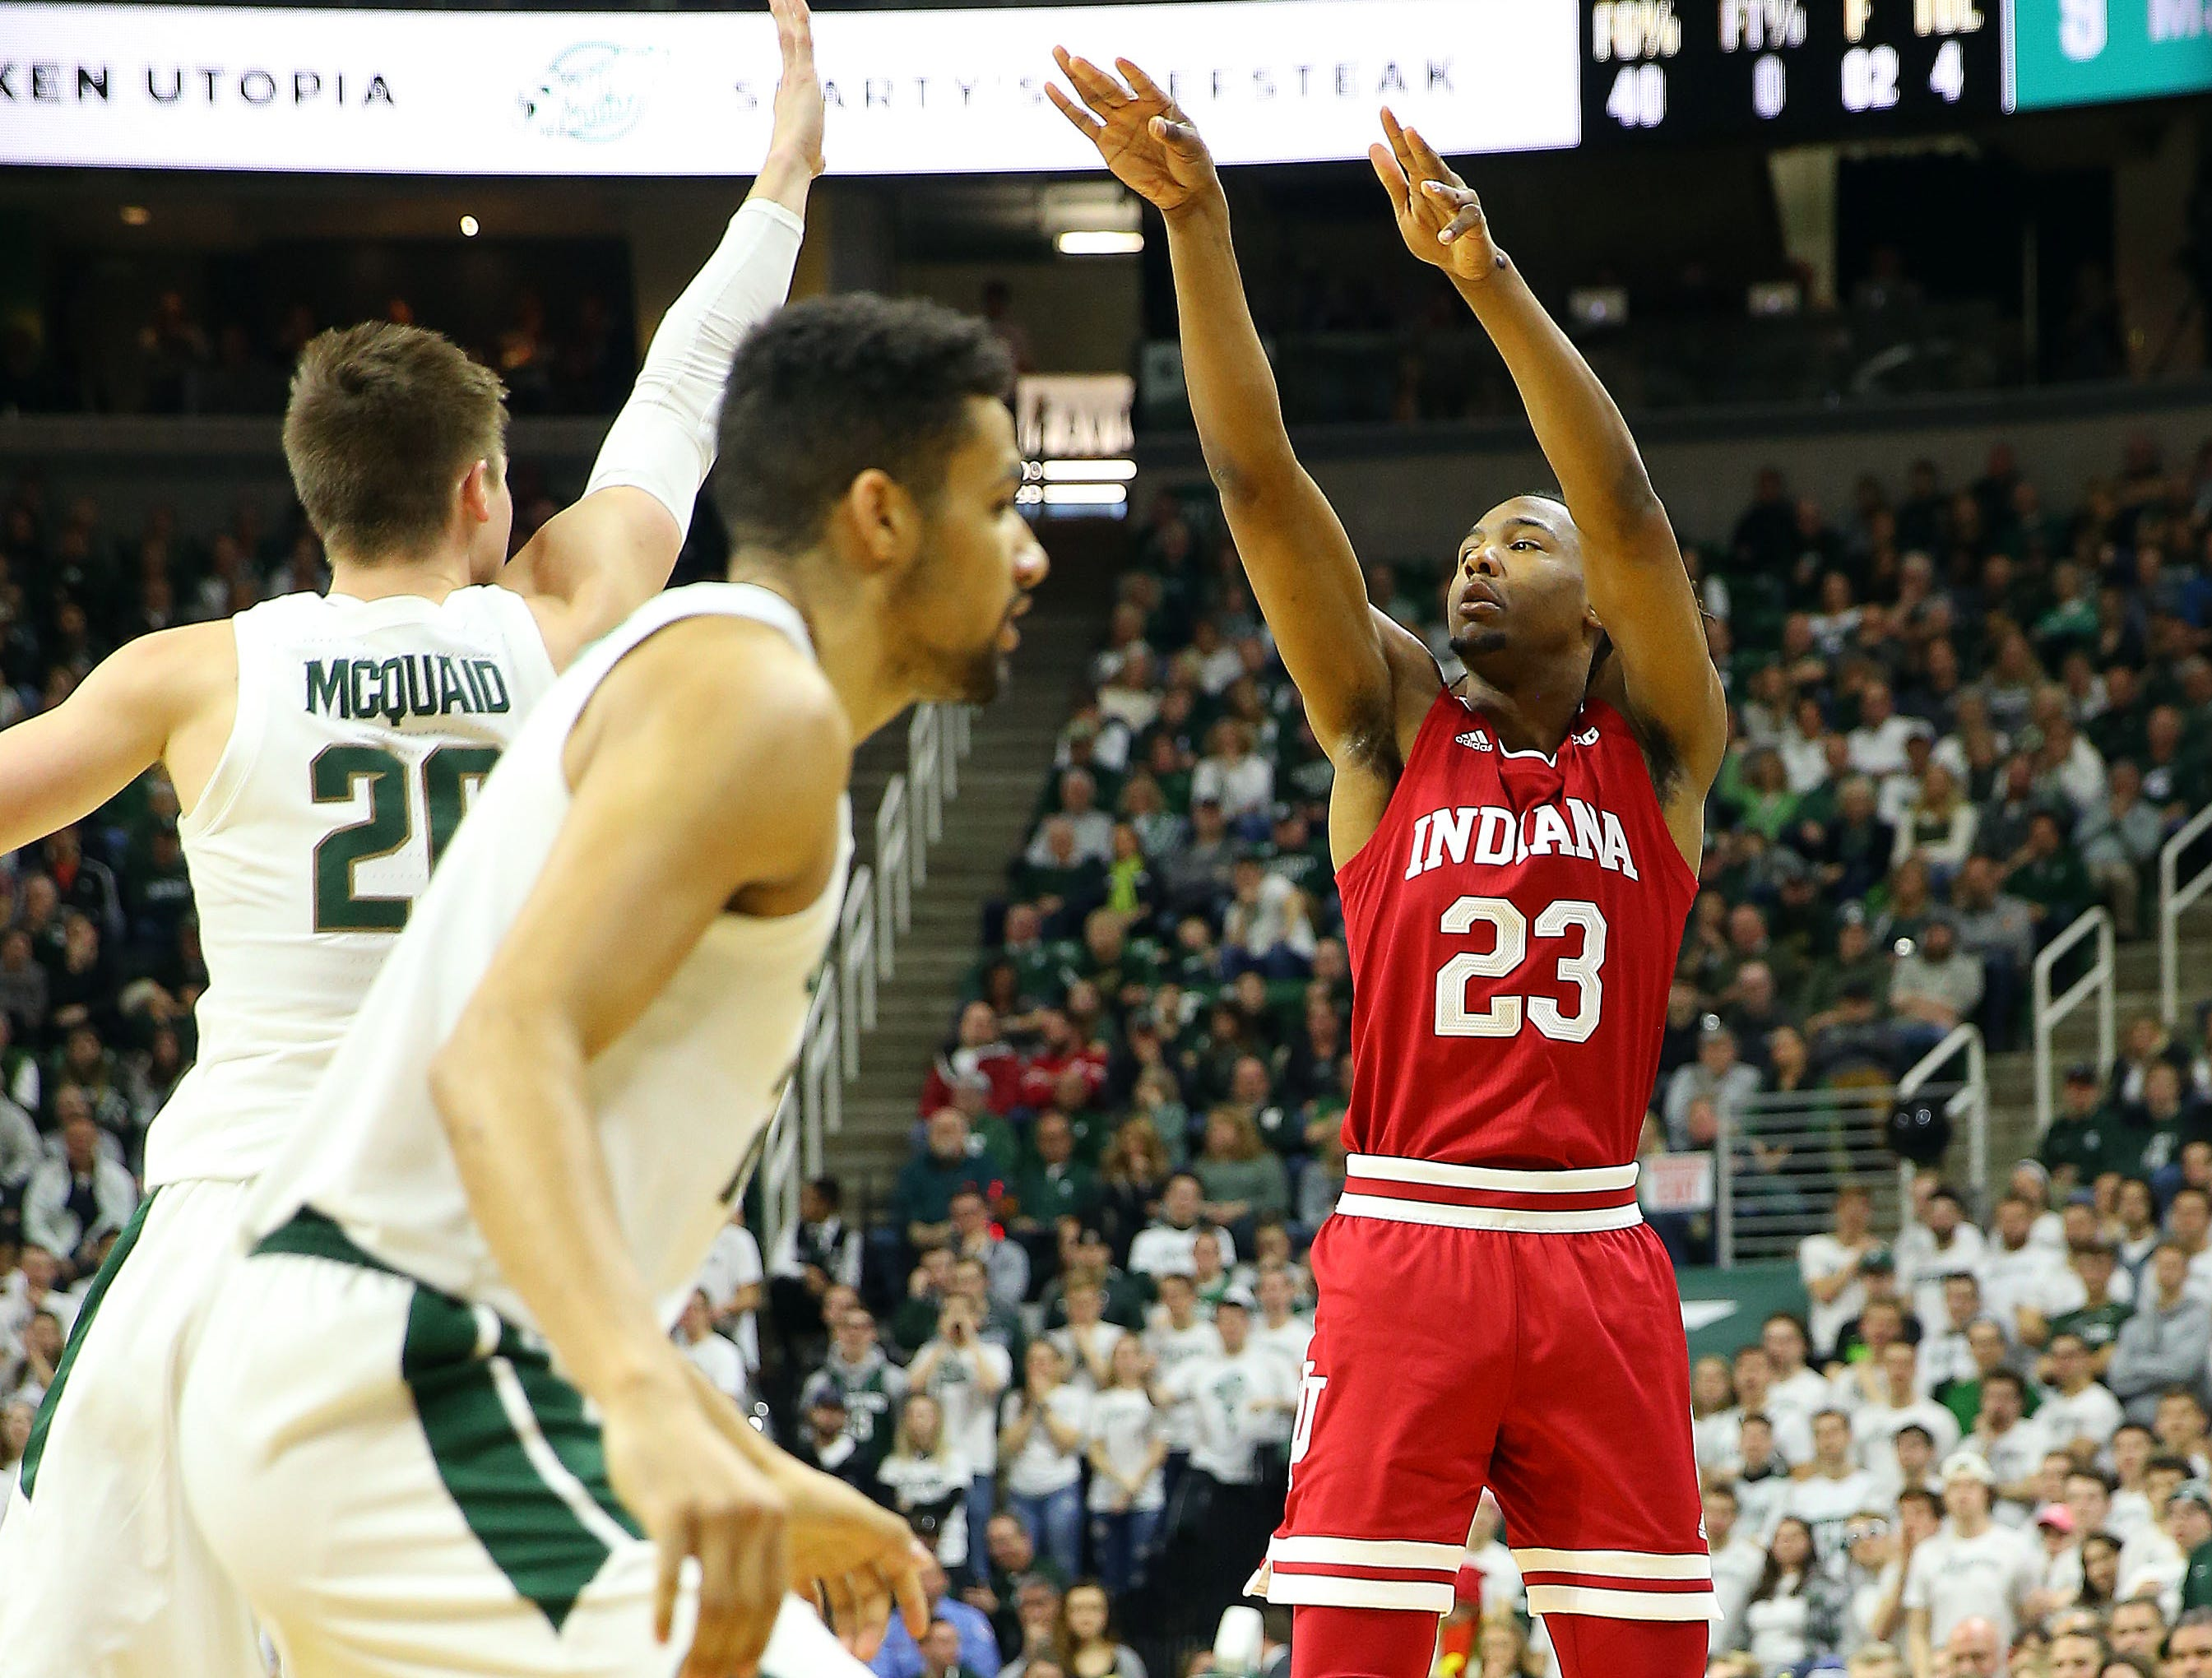 Feb 2, 2019; East Lansing, MI, USA; Indiana Hoosiers forward Damezi Anderson (23) attempts a three point basket over Michigan State Spartans guard Matt McQuaid (20) during the first half  at the Breslin Center. Mandatory Credit: Mike Carter-USA TODAY Sports